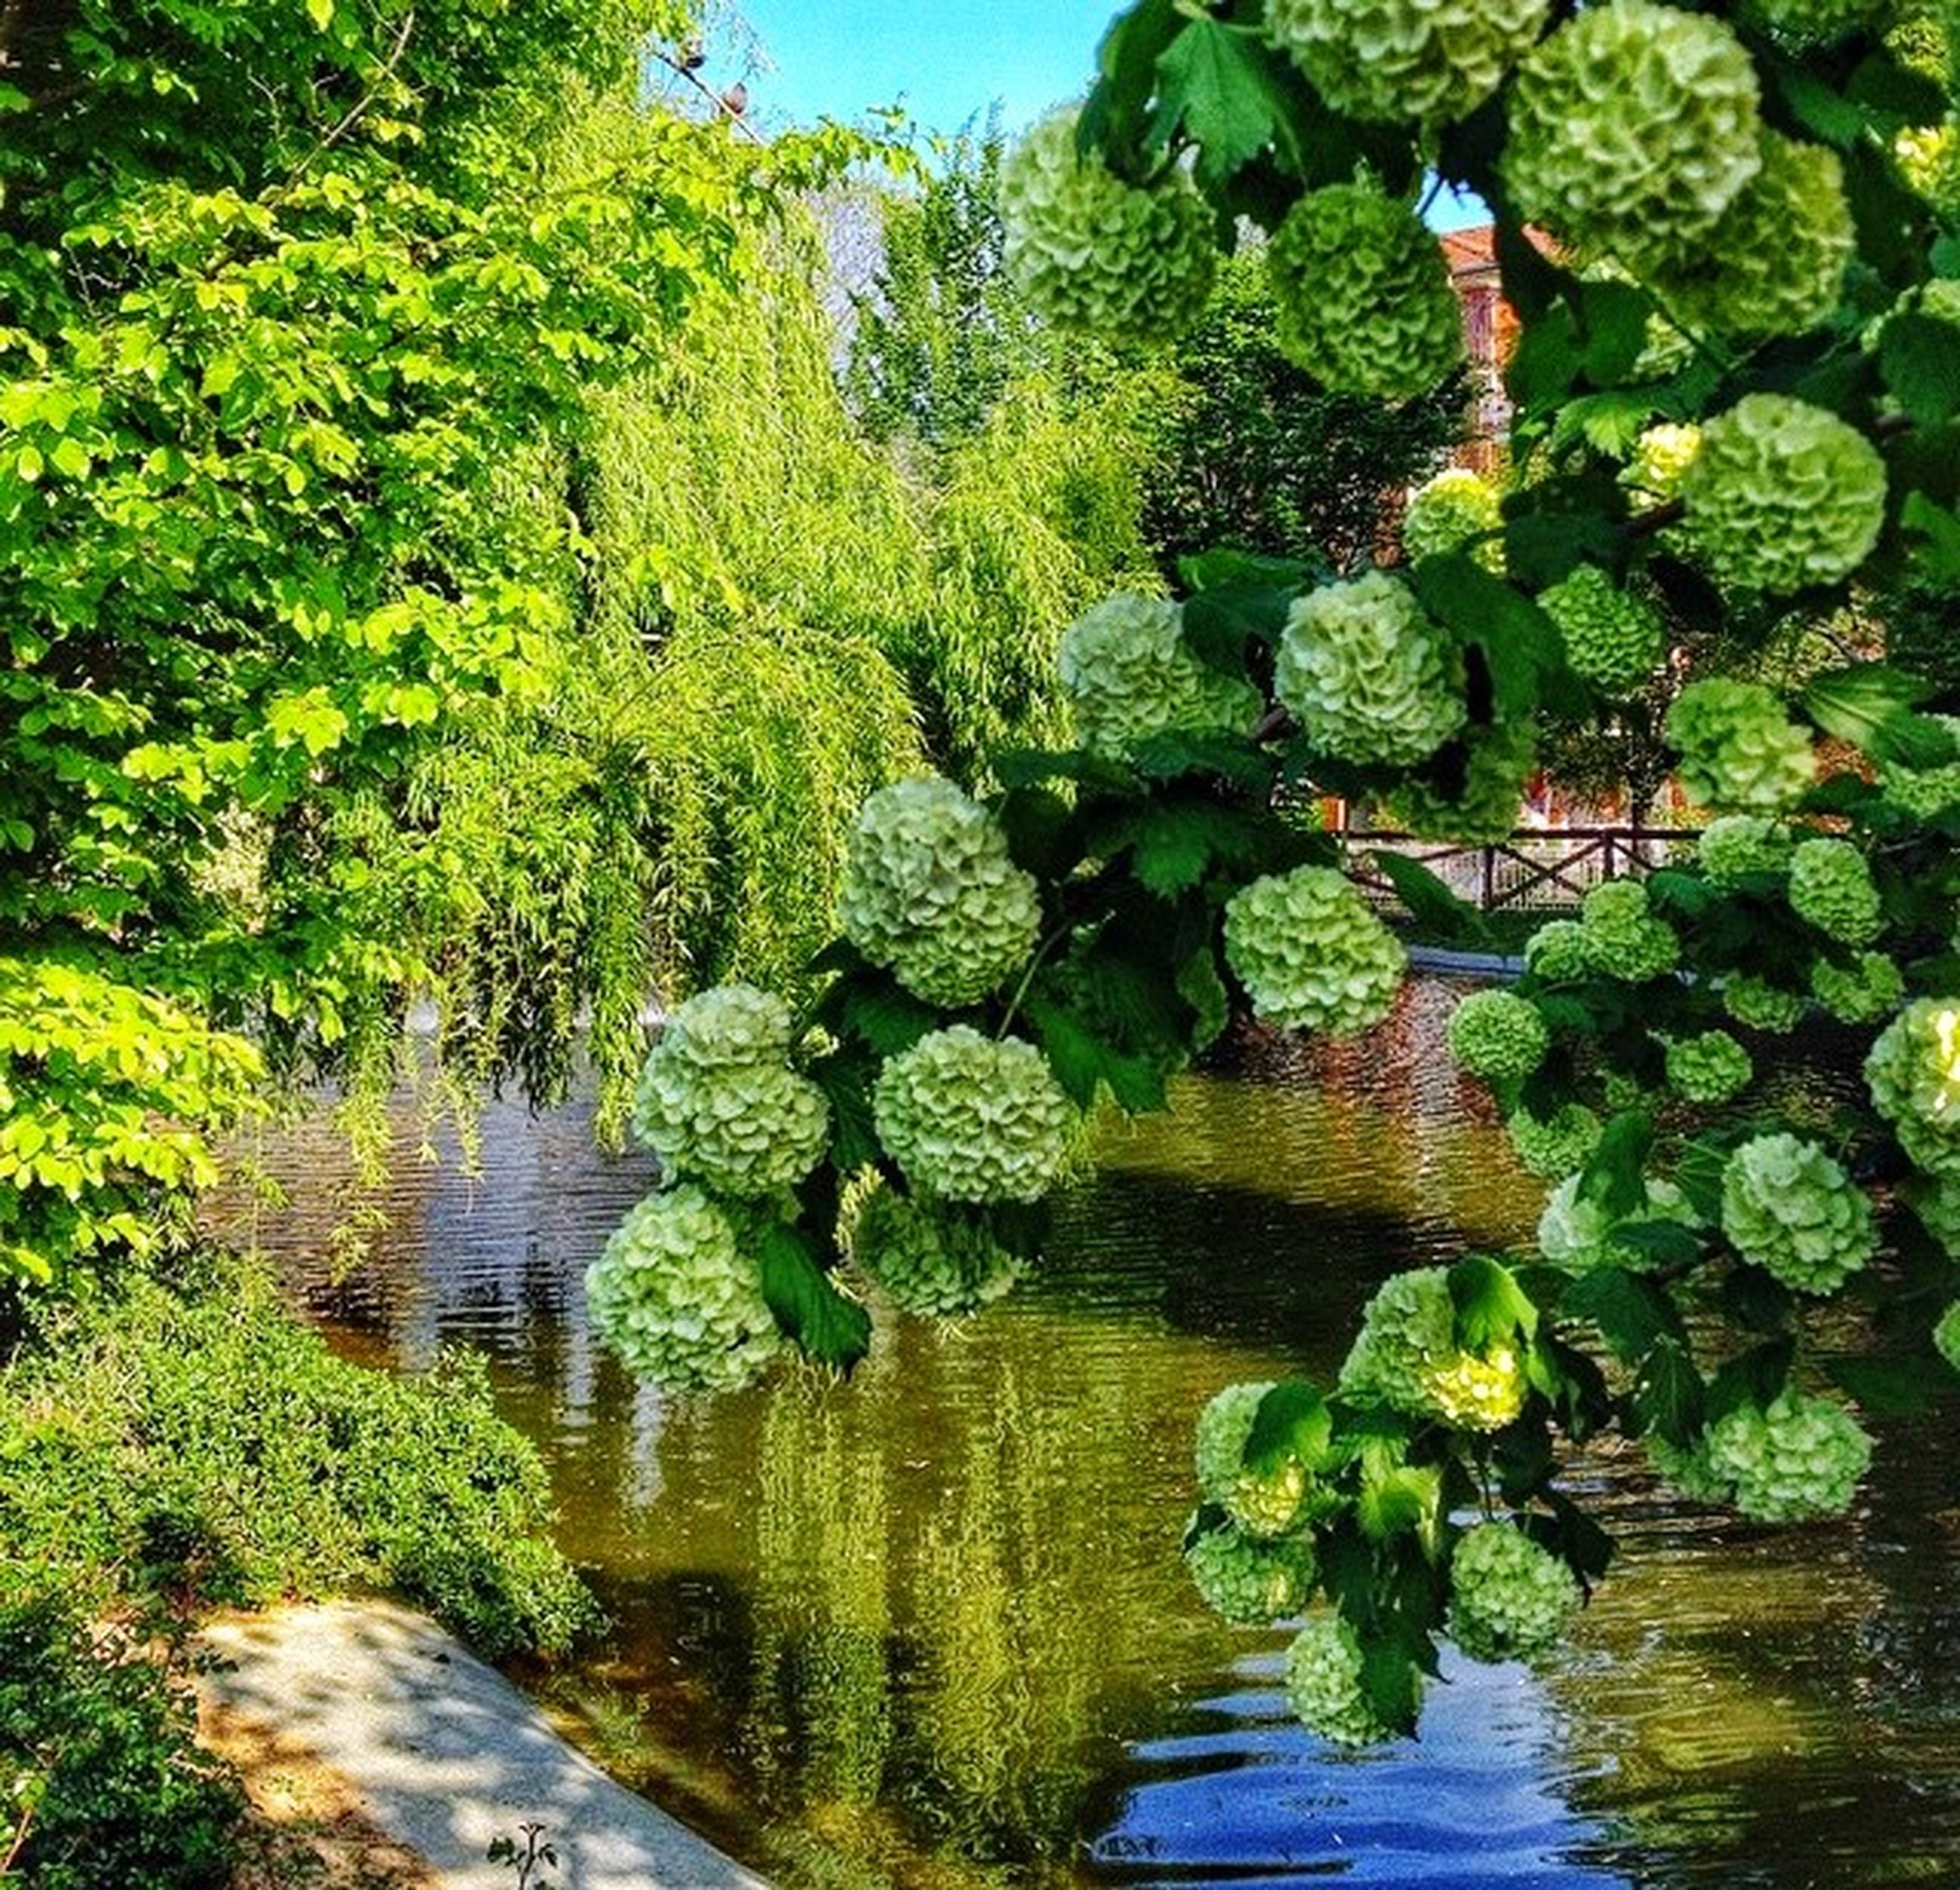 green color, water, growth, tree, tranquility, nature, beauty in nature, reflection, plant, tranquil scene, scenics, leaf, green, pond, freshness, day, outdoors, lush foliage, stream, idyllic